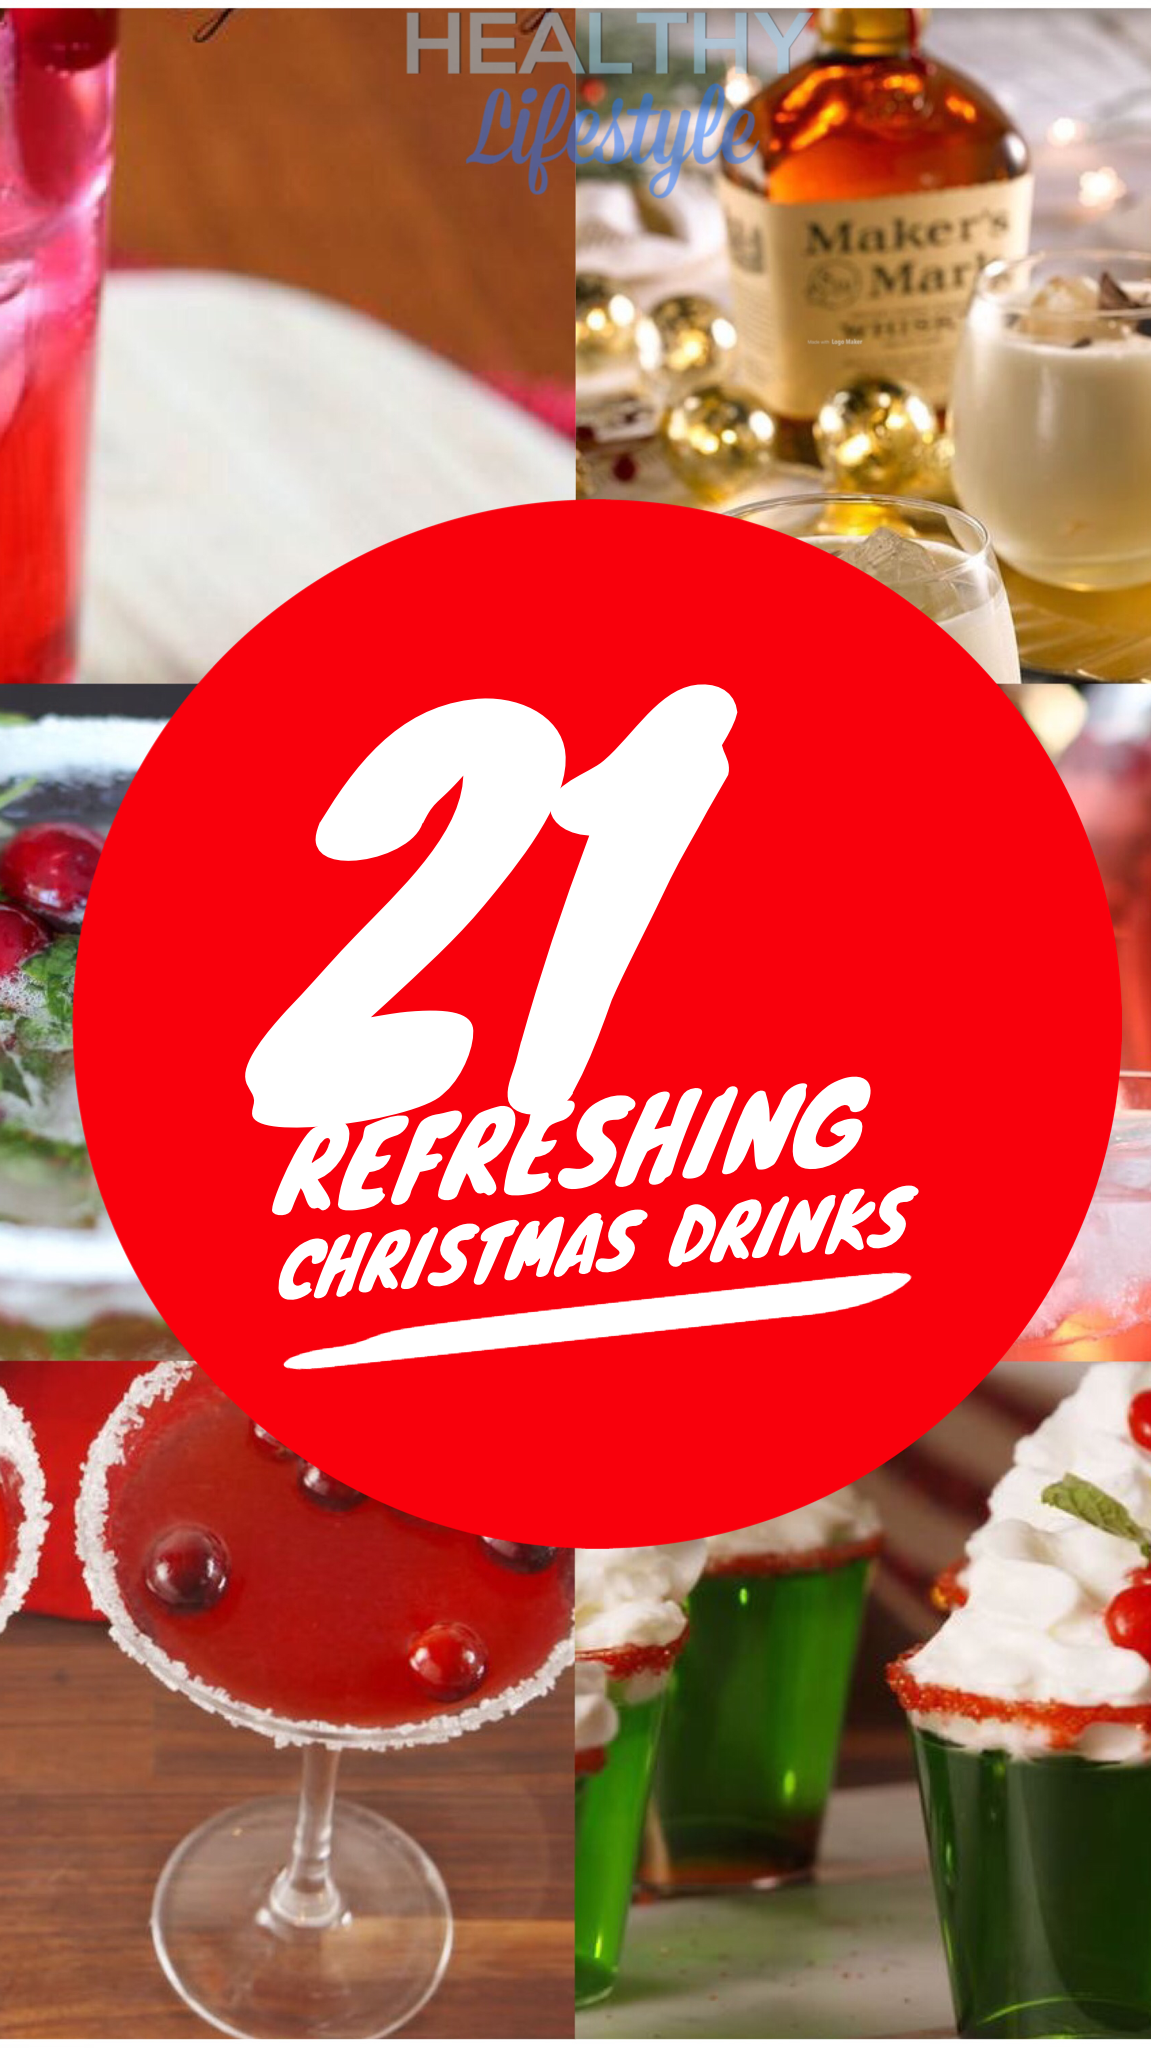 Refreshing Christmas drinks alcohol & nonalcohol